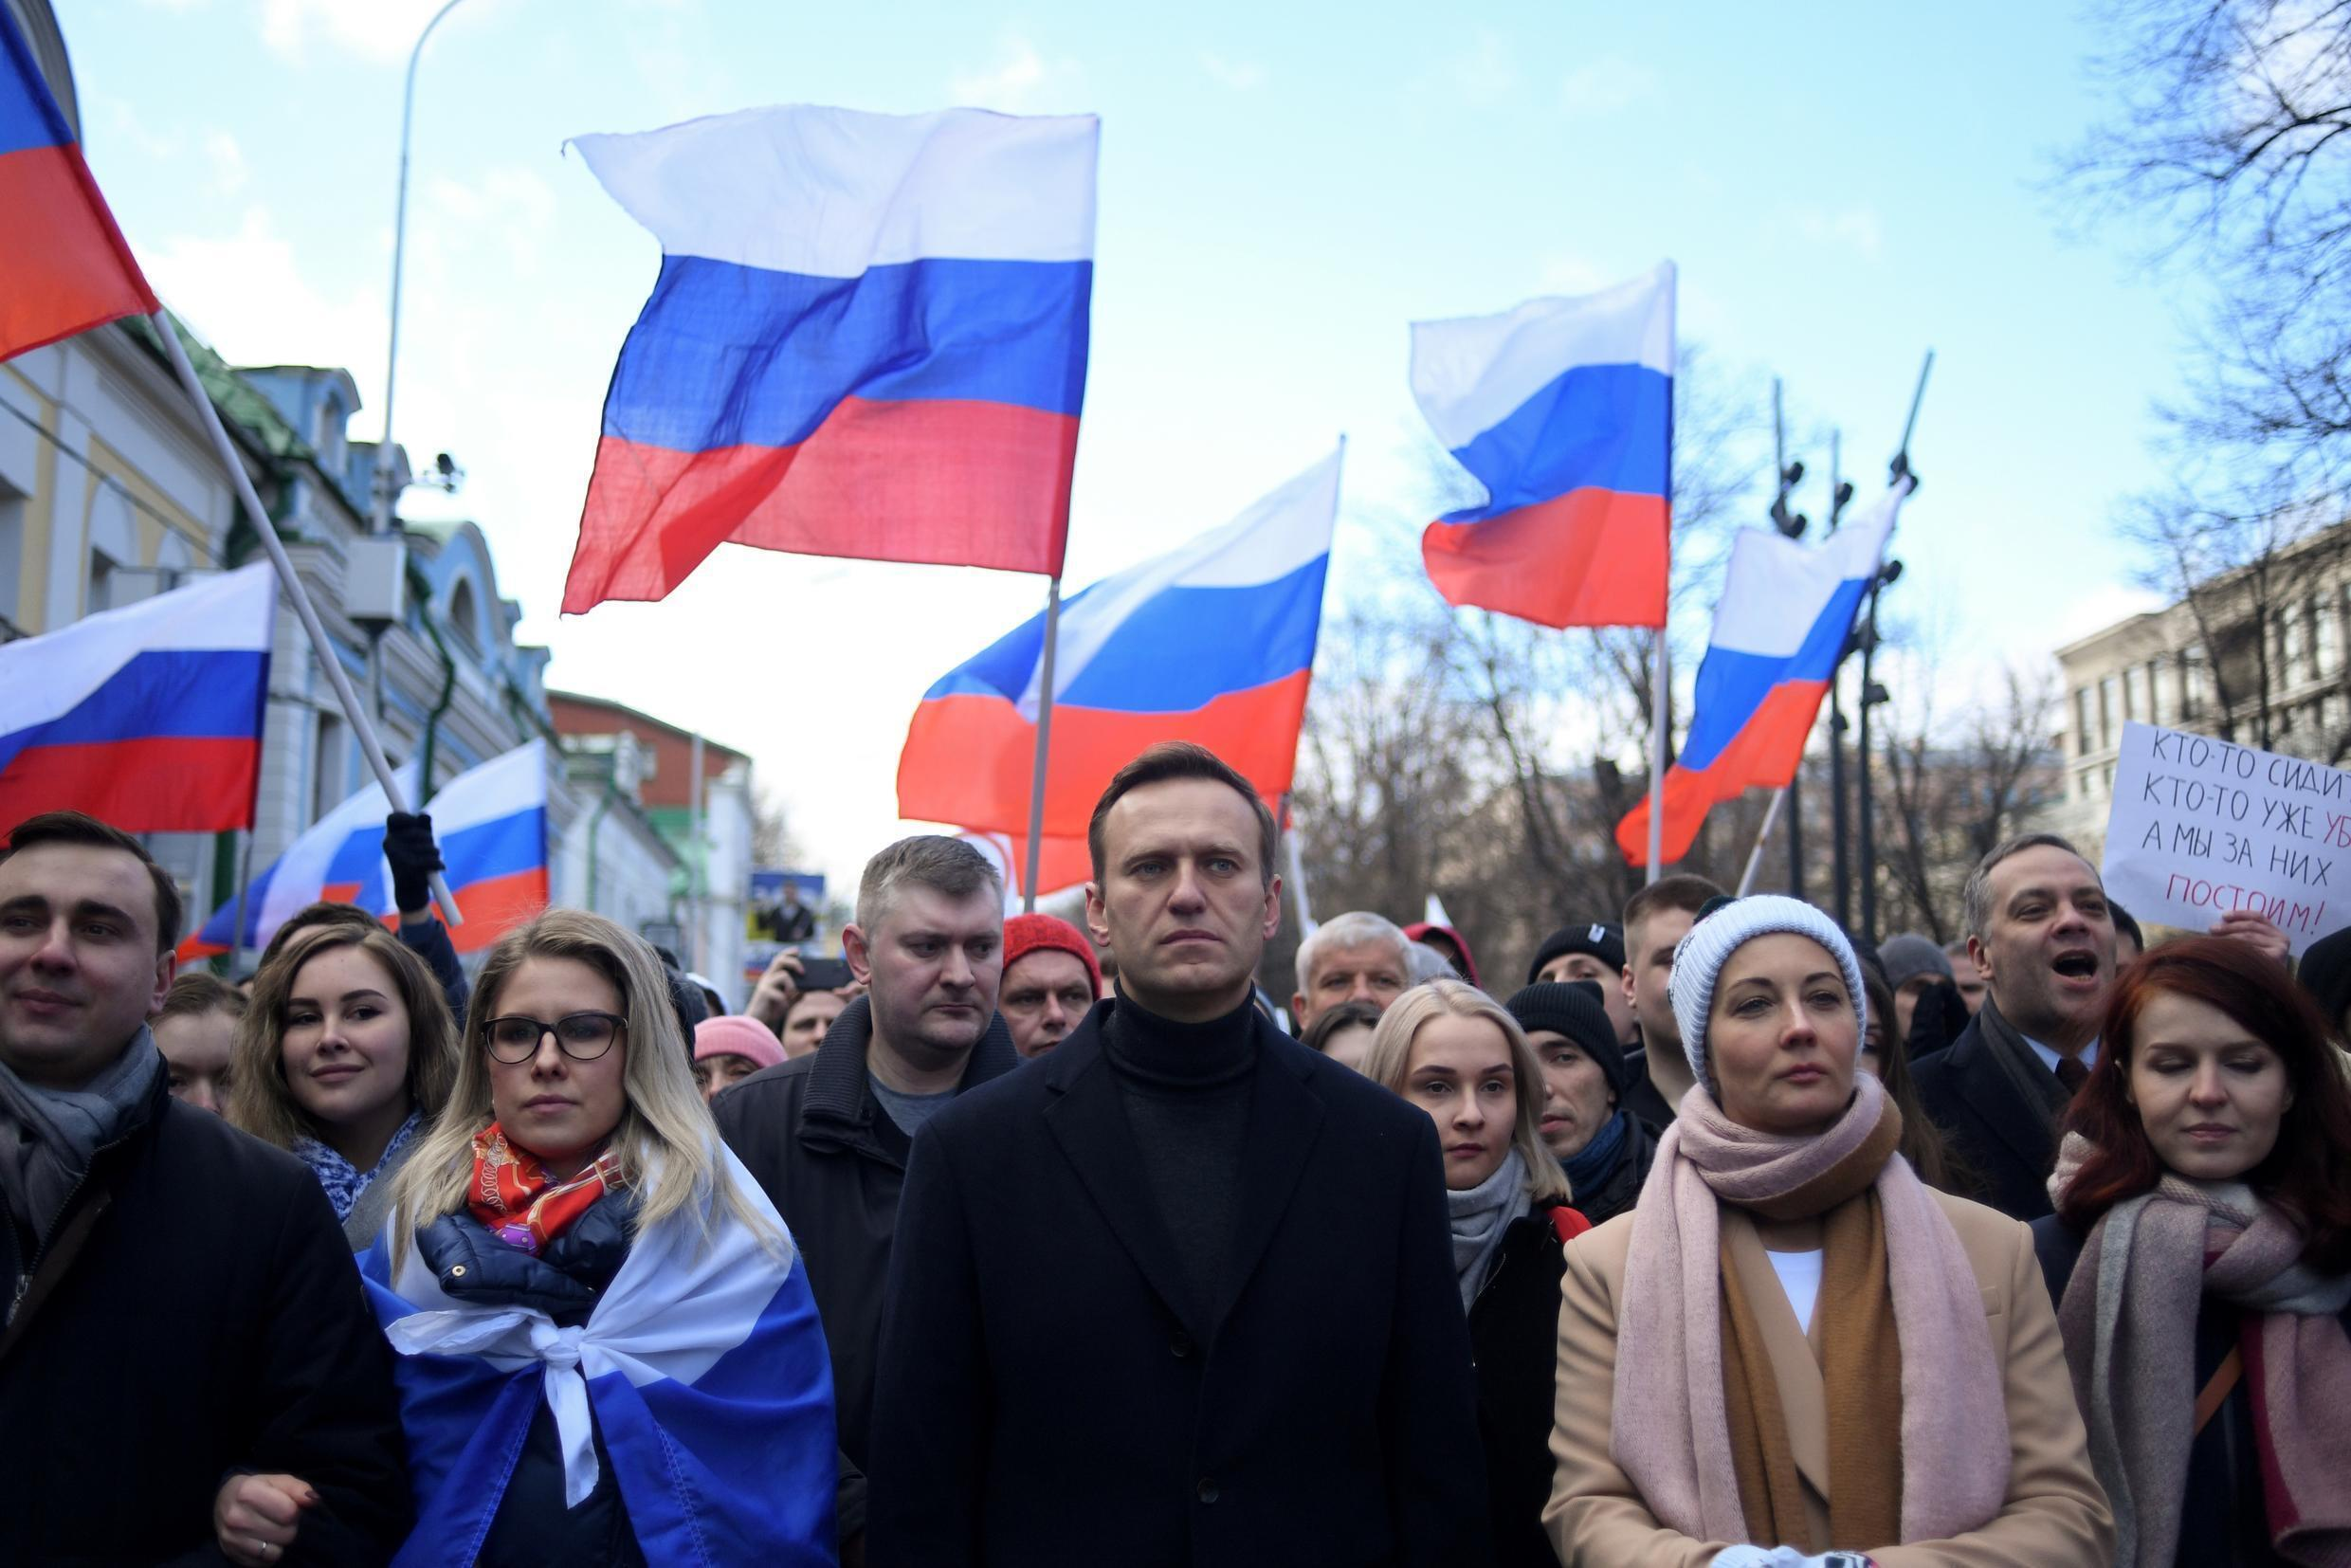 The Navalny affair has provoked a crisis in relations between Russia and the West